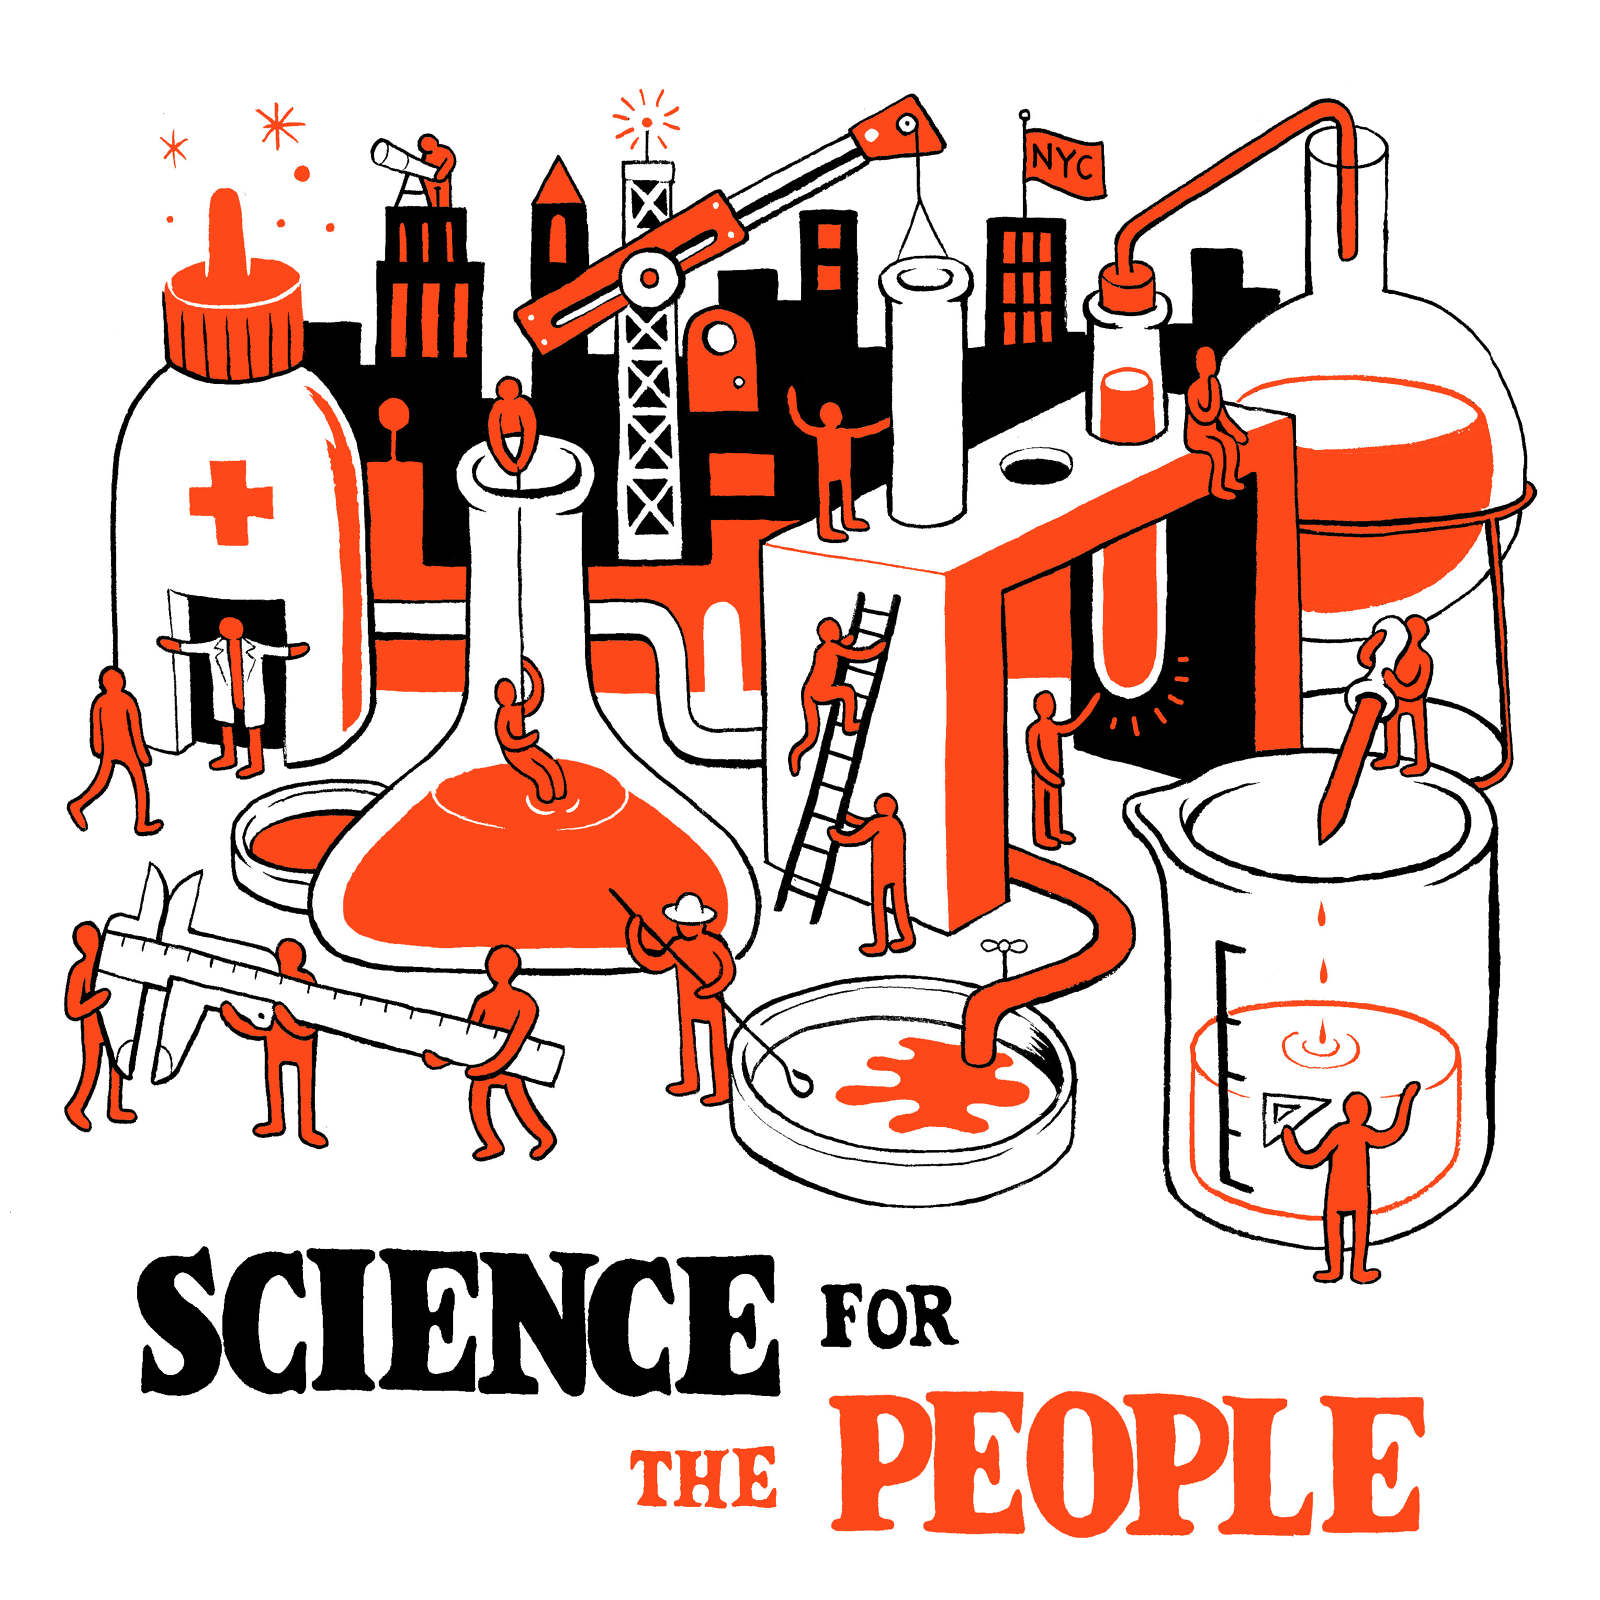 Science for the People - Matteo Farinella